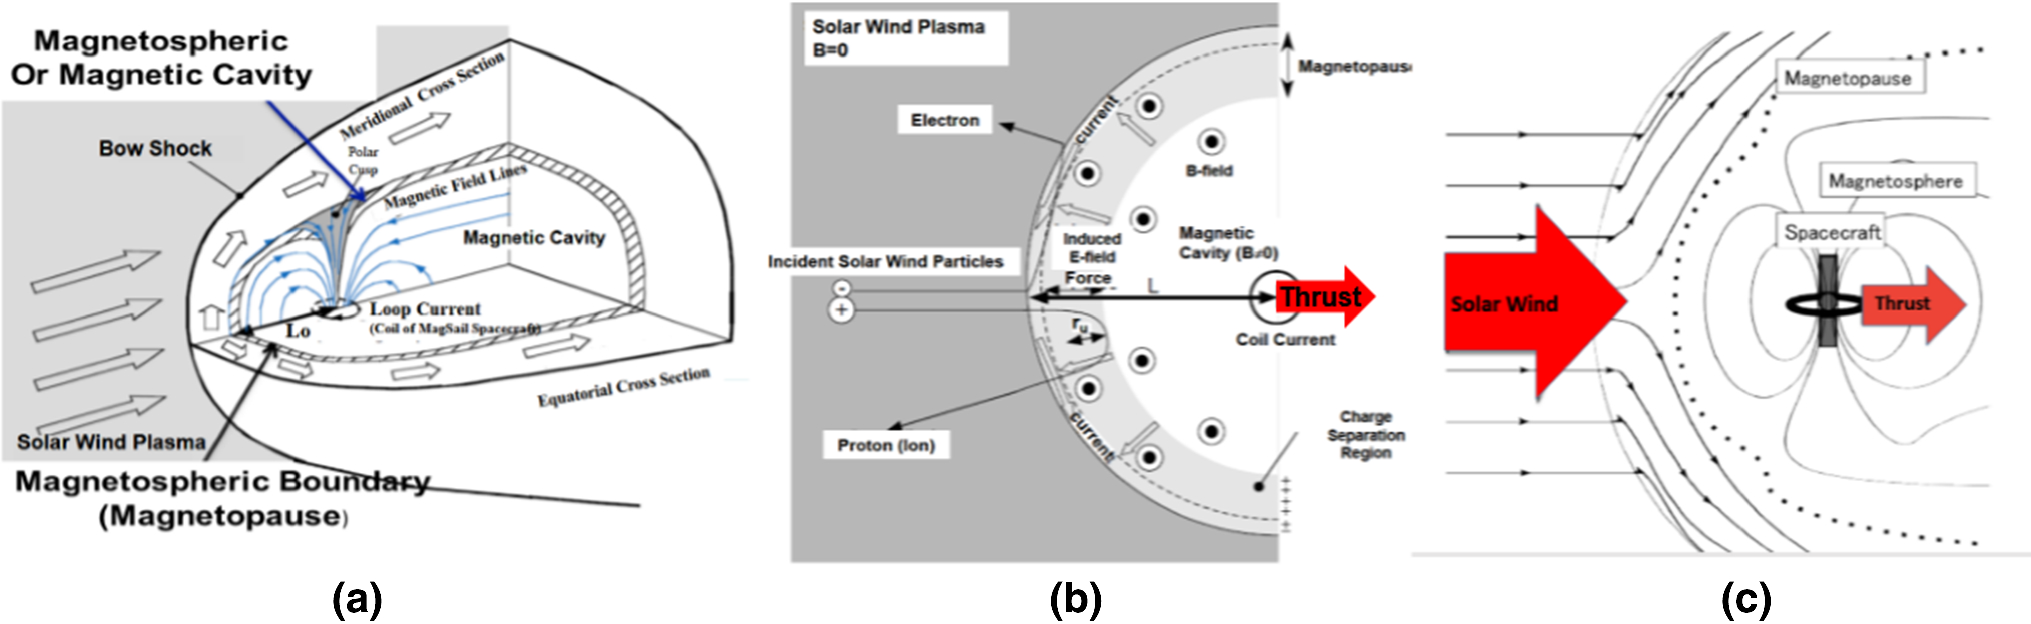 Review Of Solar Magnetic Sailing Configurations For Space Travel Wind Diagram Direction The Open Image In New Window